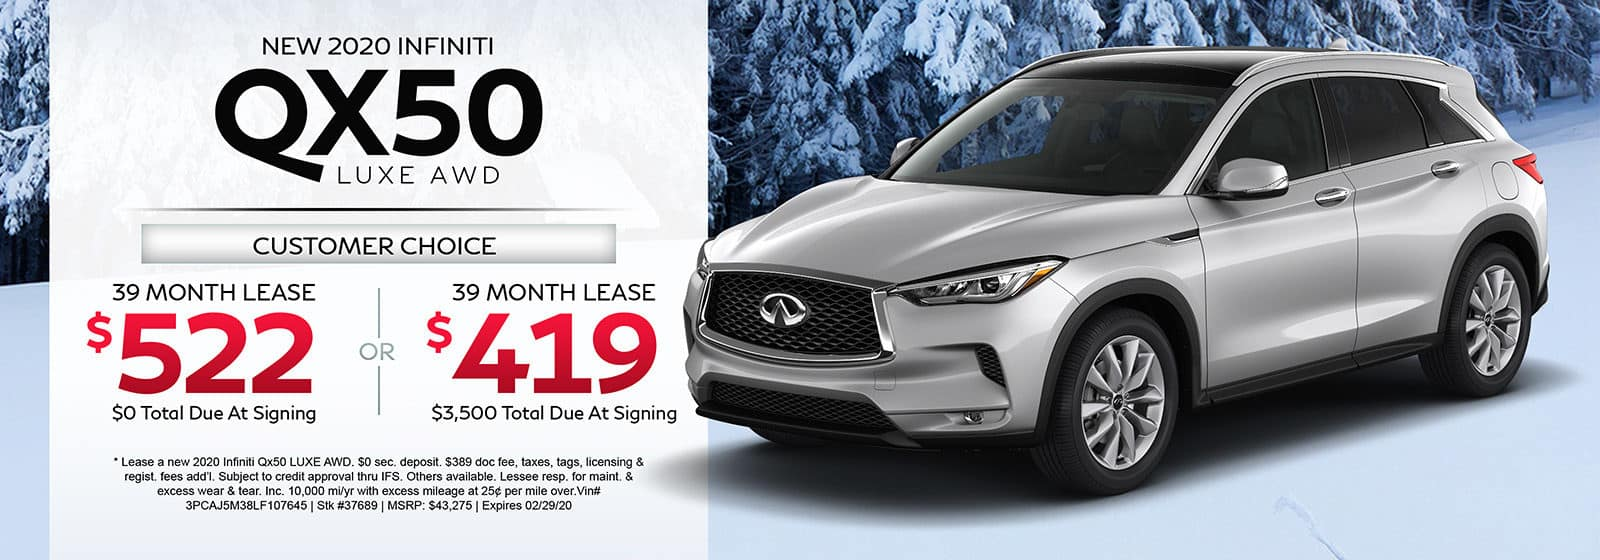 Lease a new 2020 INFINITI QX50 LUXE AWD for 39 months.